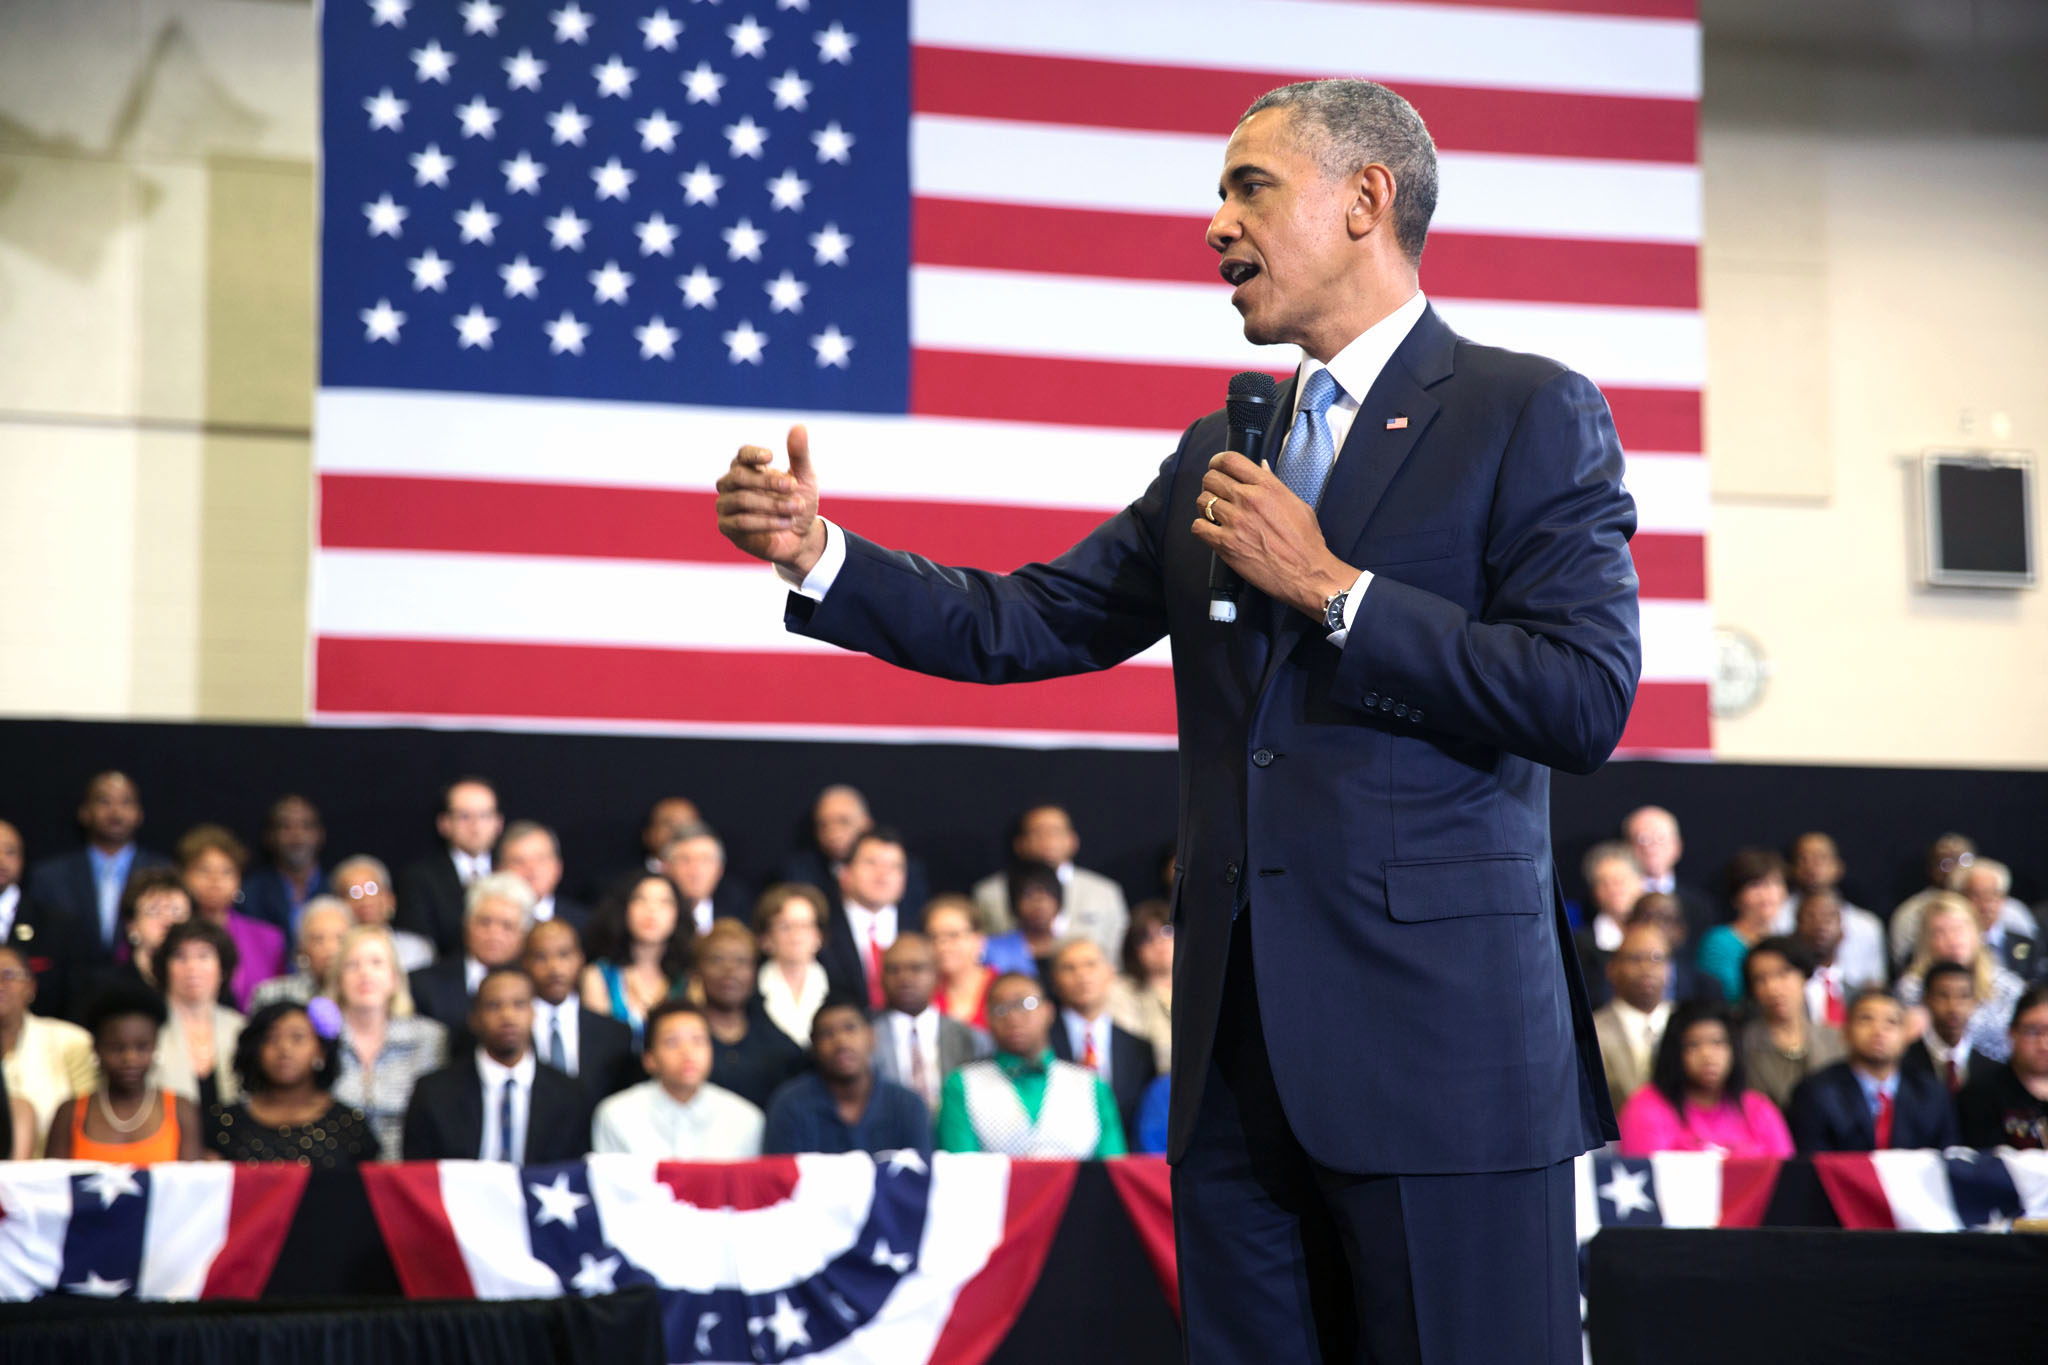 President Obama answers students' questions at a